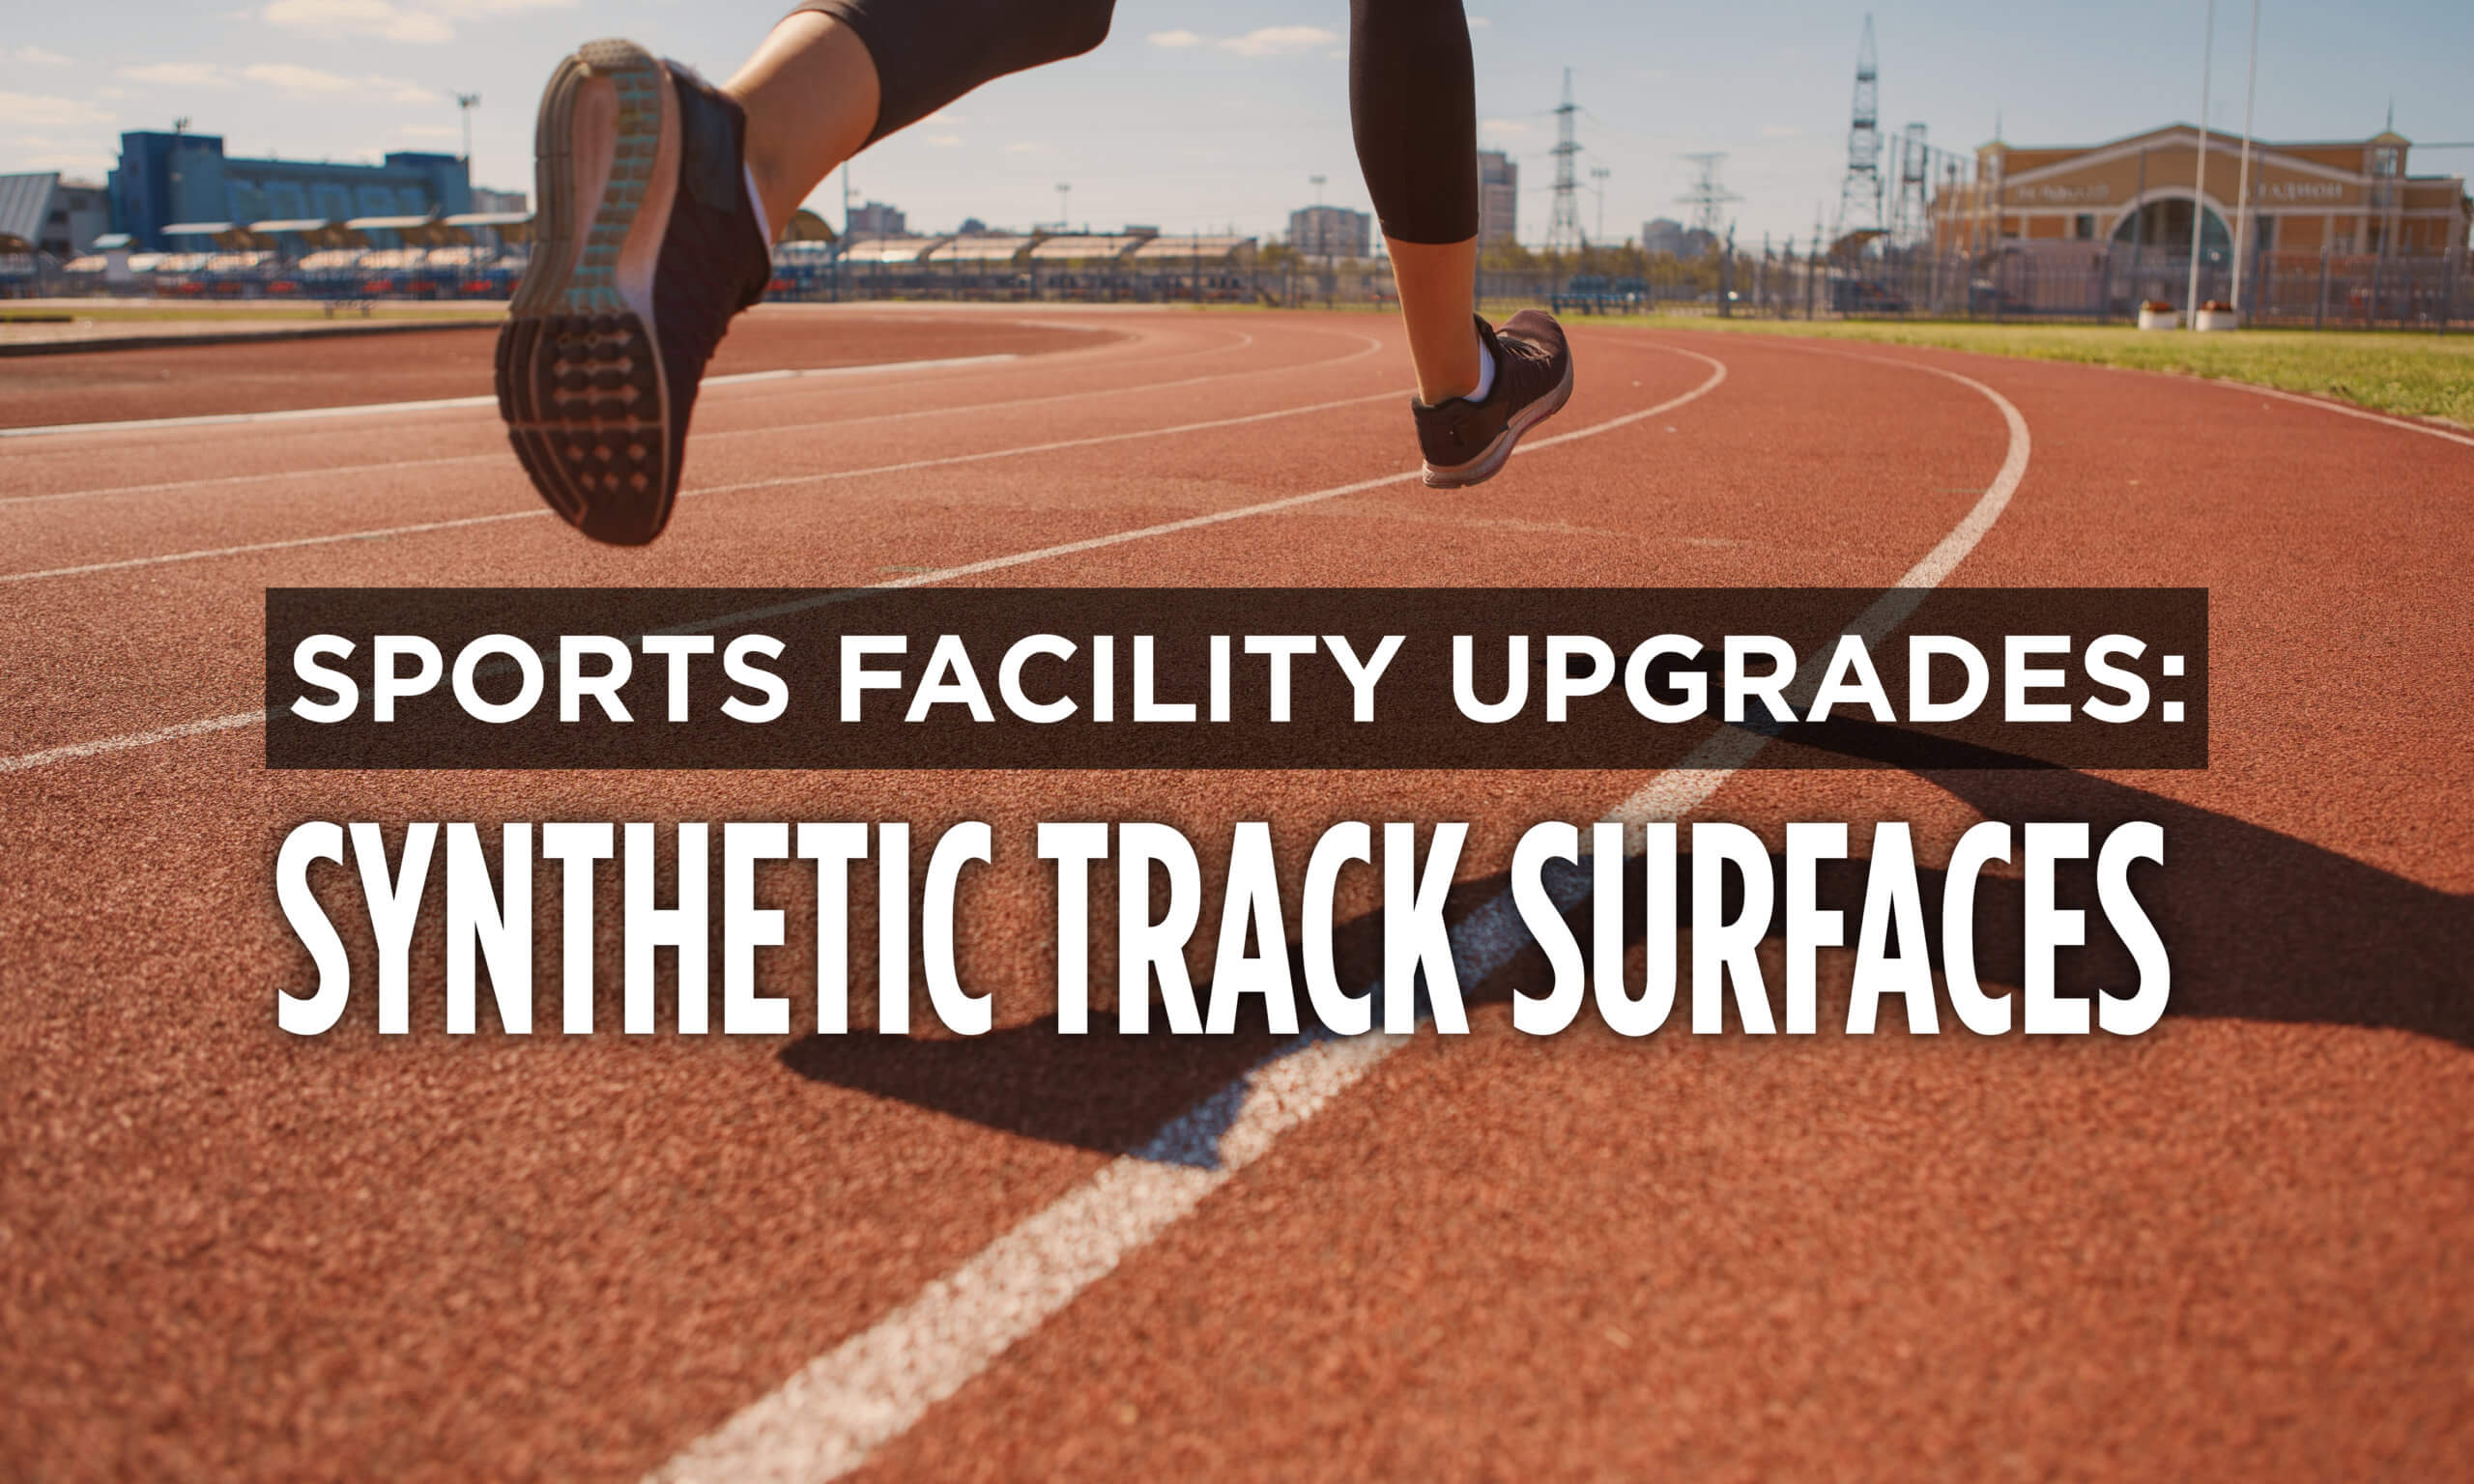 Safety, Speed & Comfort Drive Modern Track Surface Upgrades